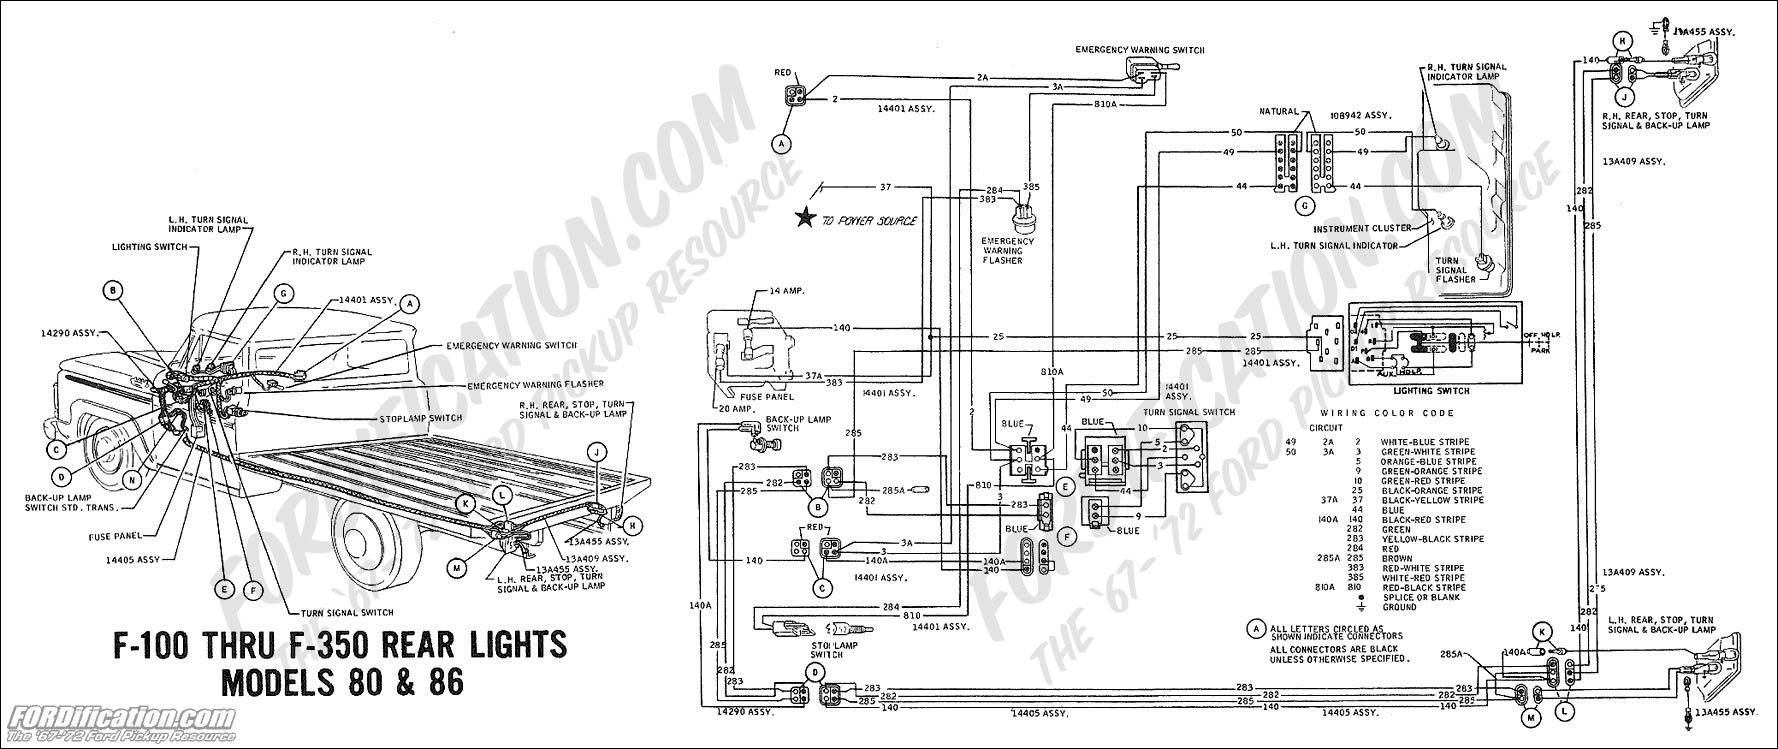 wiring_69rearlights mdls80 86 ford truck technical drawings and schematics section h wiring 1990 ford truck wiring diagram at gsmx.co